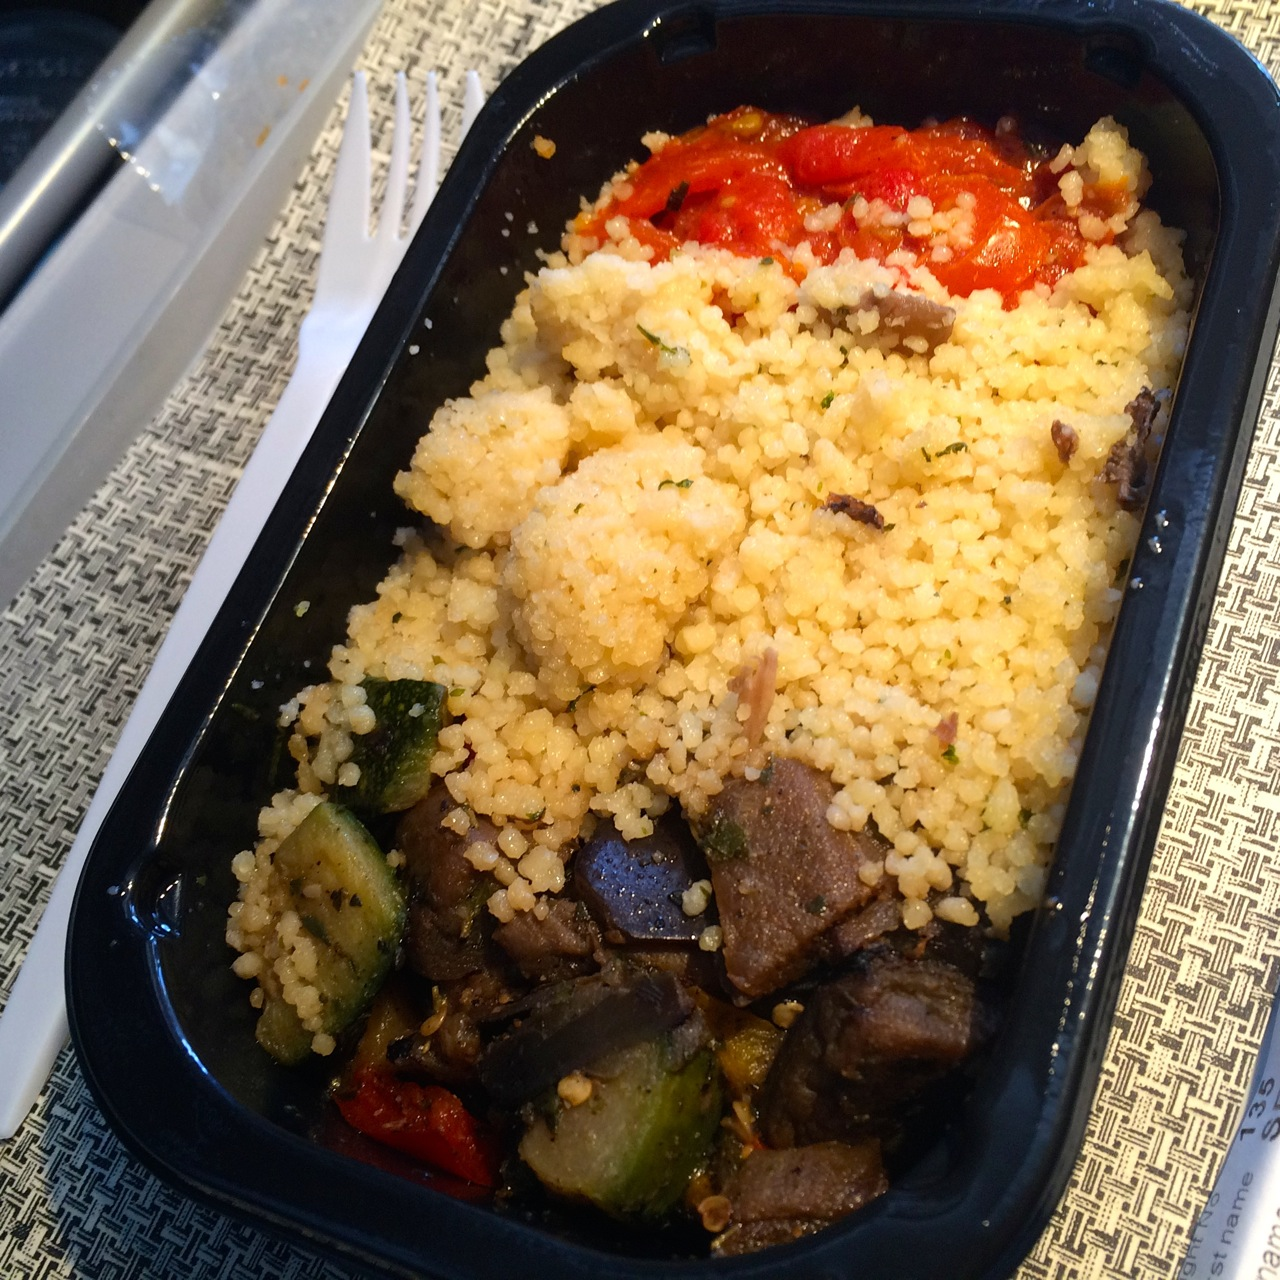 https://i0.wp.com/fatgayvegan.com/wp-content/uploads/2015/05/american-airlines-vegan-meal.jpg?fit=1280%2C1280